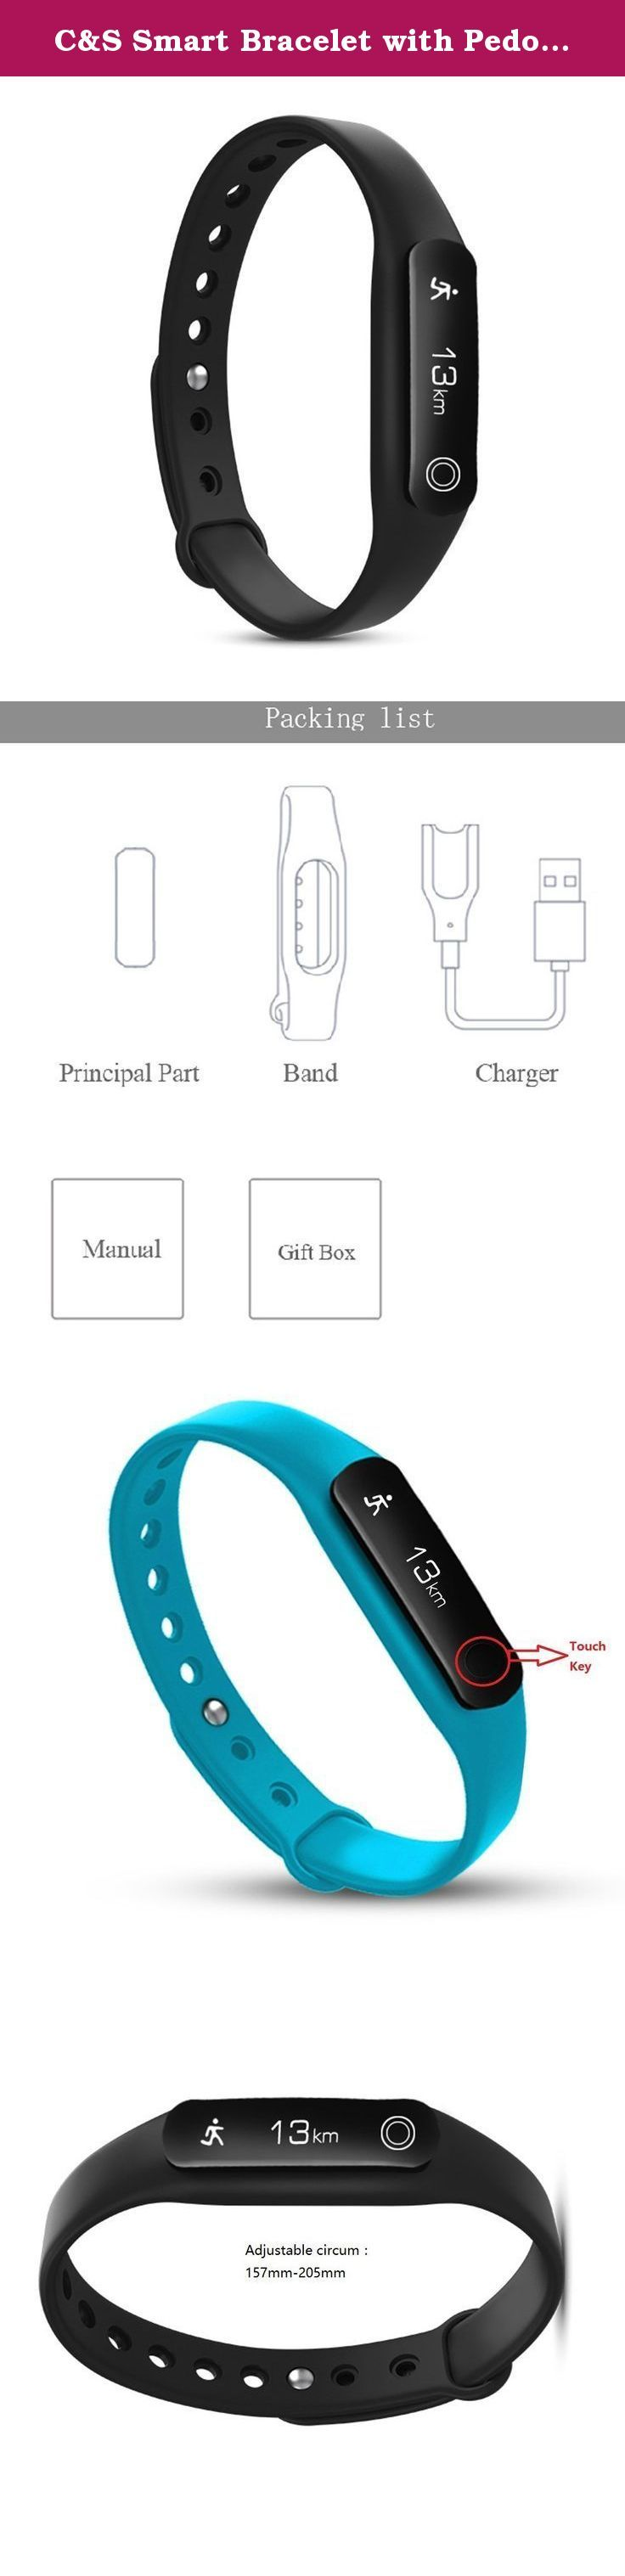 C&S Smart Bracelet with Pedometer Calories Remote Camera Alarm Clock for Android and IOS Phone (Black). C&S Bluetooth 4.0 Activity Tracker Functions: 1.Call, SMS, and other reminder. Never loss any information of your phone 2.Track your steps, distance, calories. Help you do sport scientifically 3.Sleep Monitor. Help you to improve your sleep quality 4.Remote Camera Control. It can control the camera of your smart phone,take pictures by yourself Specs: Bluetooth Version: Bluetooth 4.0…